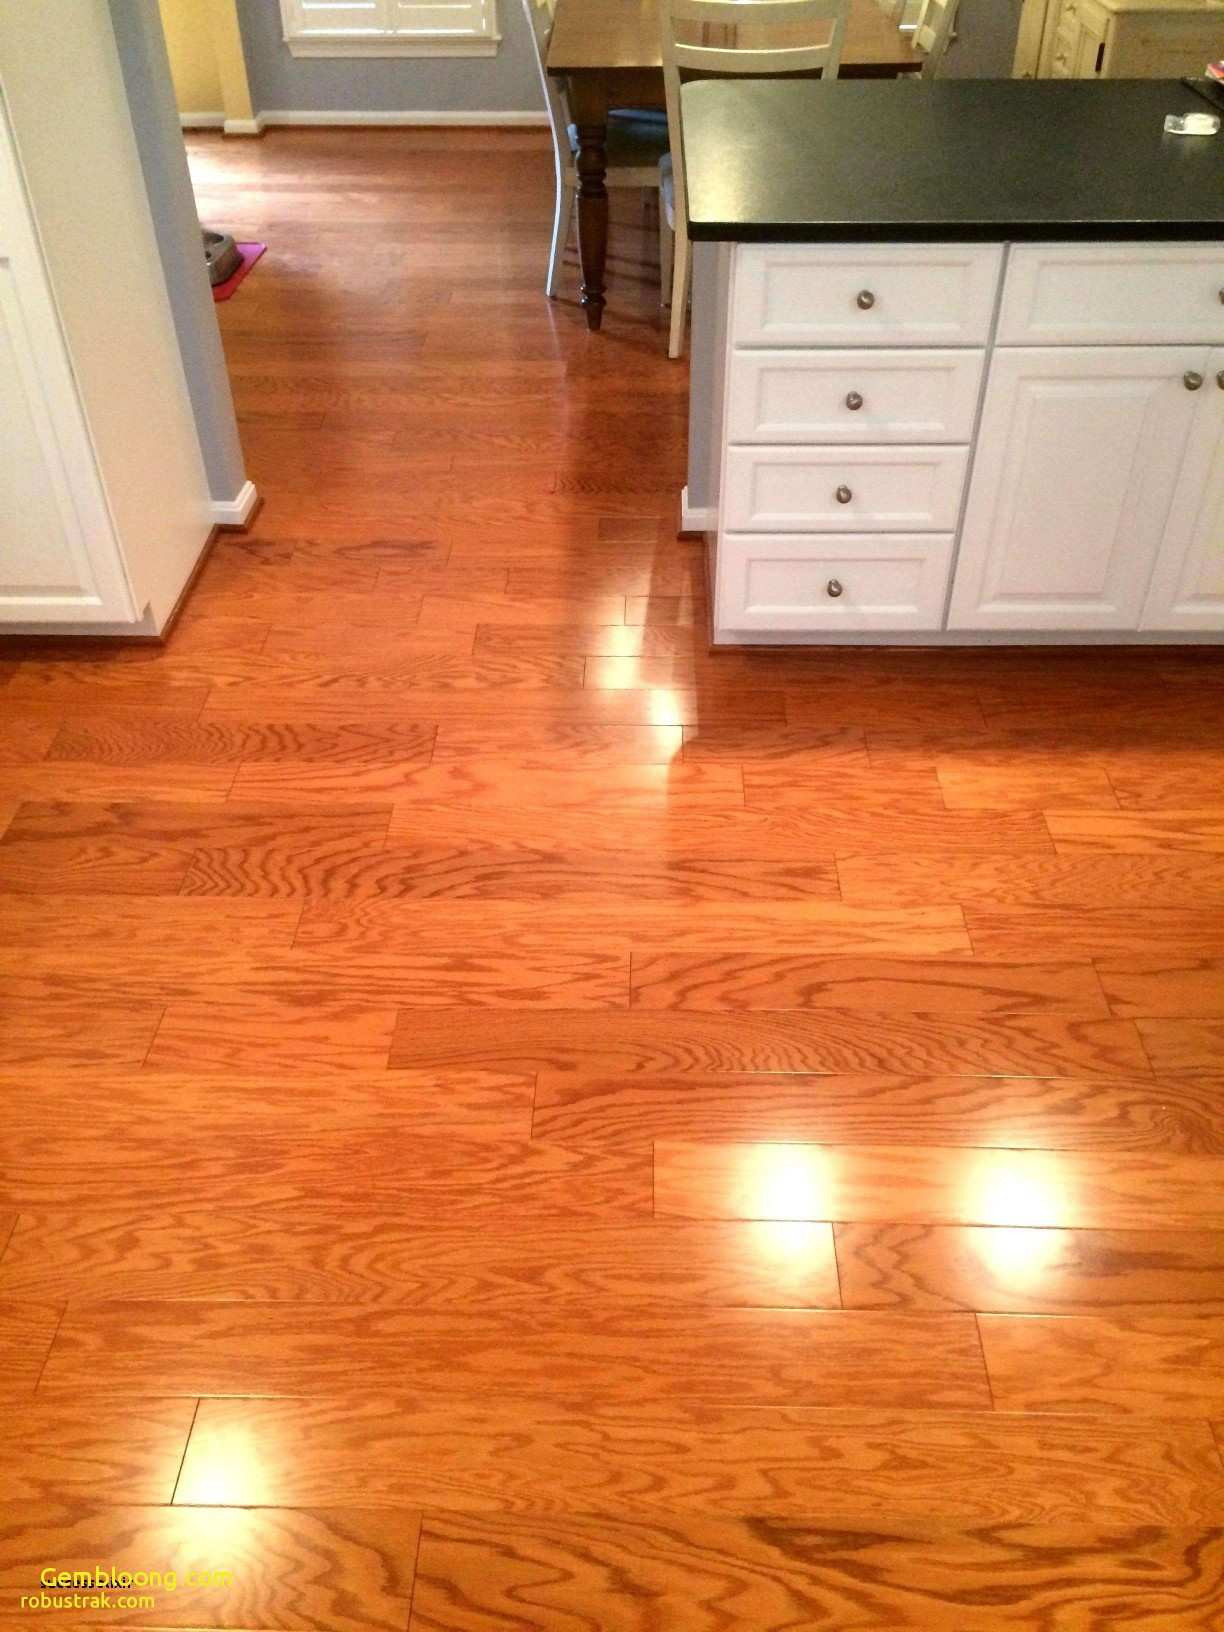 hardwood floor layout pattern of wood for floors facesinnature inside hardwood floors in the kitchen fresh where to buy hardwood flooring inspirational 0d grace place barnegat